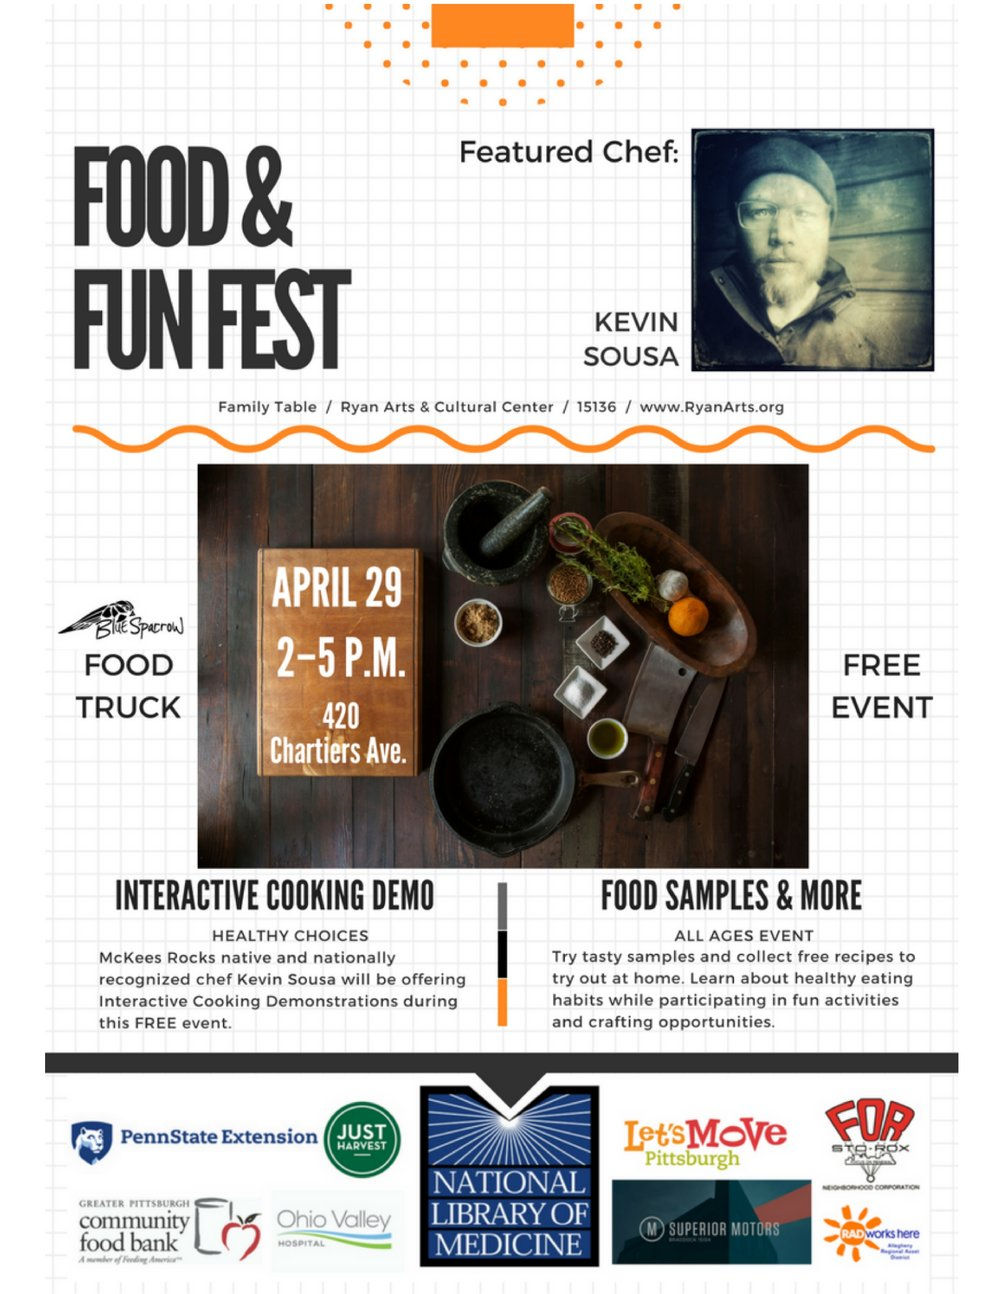 Food and Fun Fest Father Ryan Arts Center Family Table Focus On Renewal Sto-Rox Cooking Demonstrations Food Samples